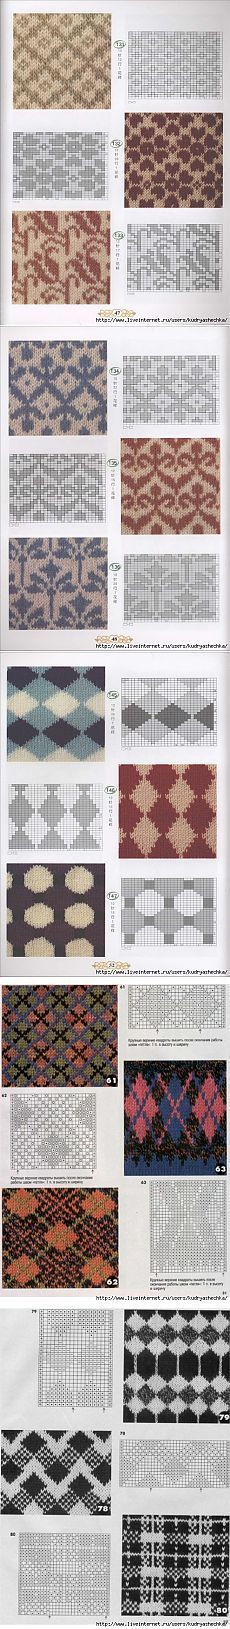 disegni jacquard You can knit one shade and purl the other shade Fair Isle Knitting Patterns, Knitting Stiches, Knitting Charts, Knitting Designs, Knit Patterns, Hand Knitting, Stitch Patterns, Easy Patterns, Knitting Machine